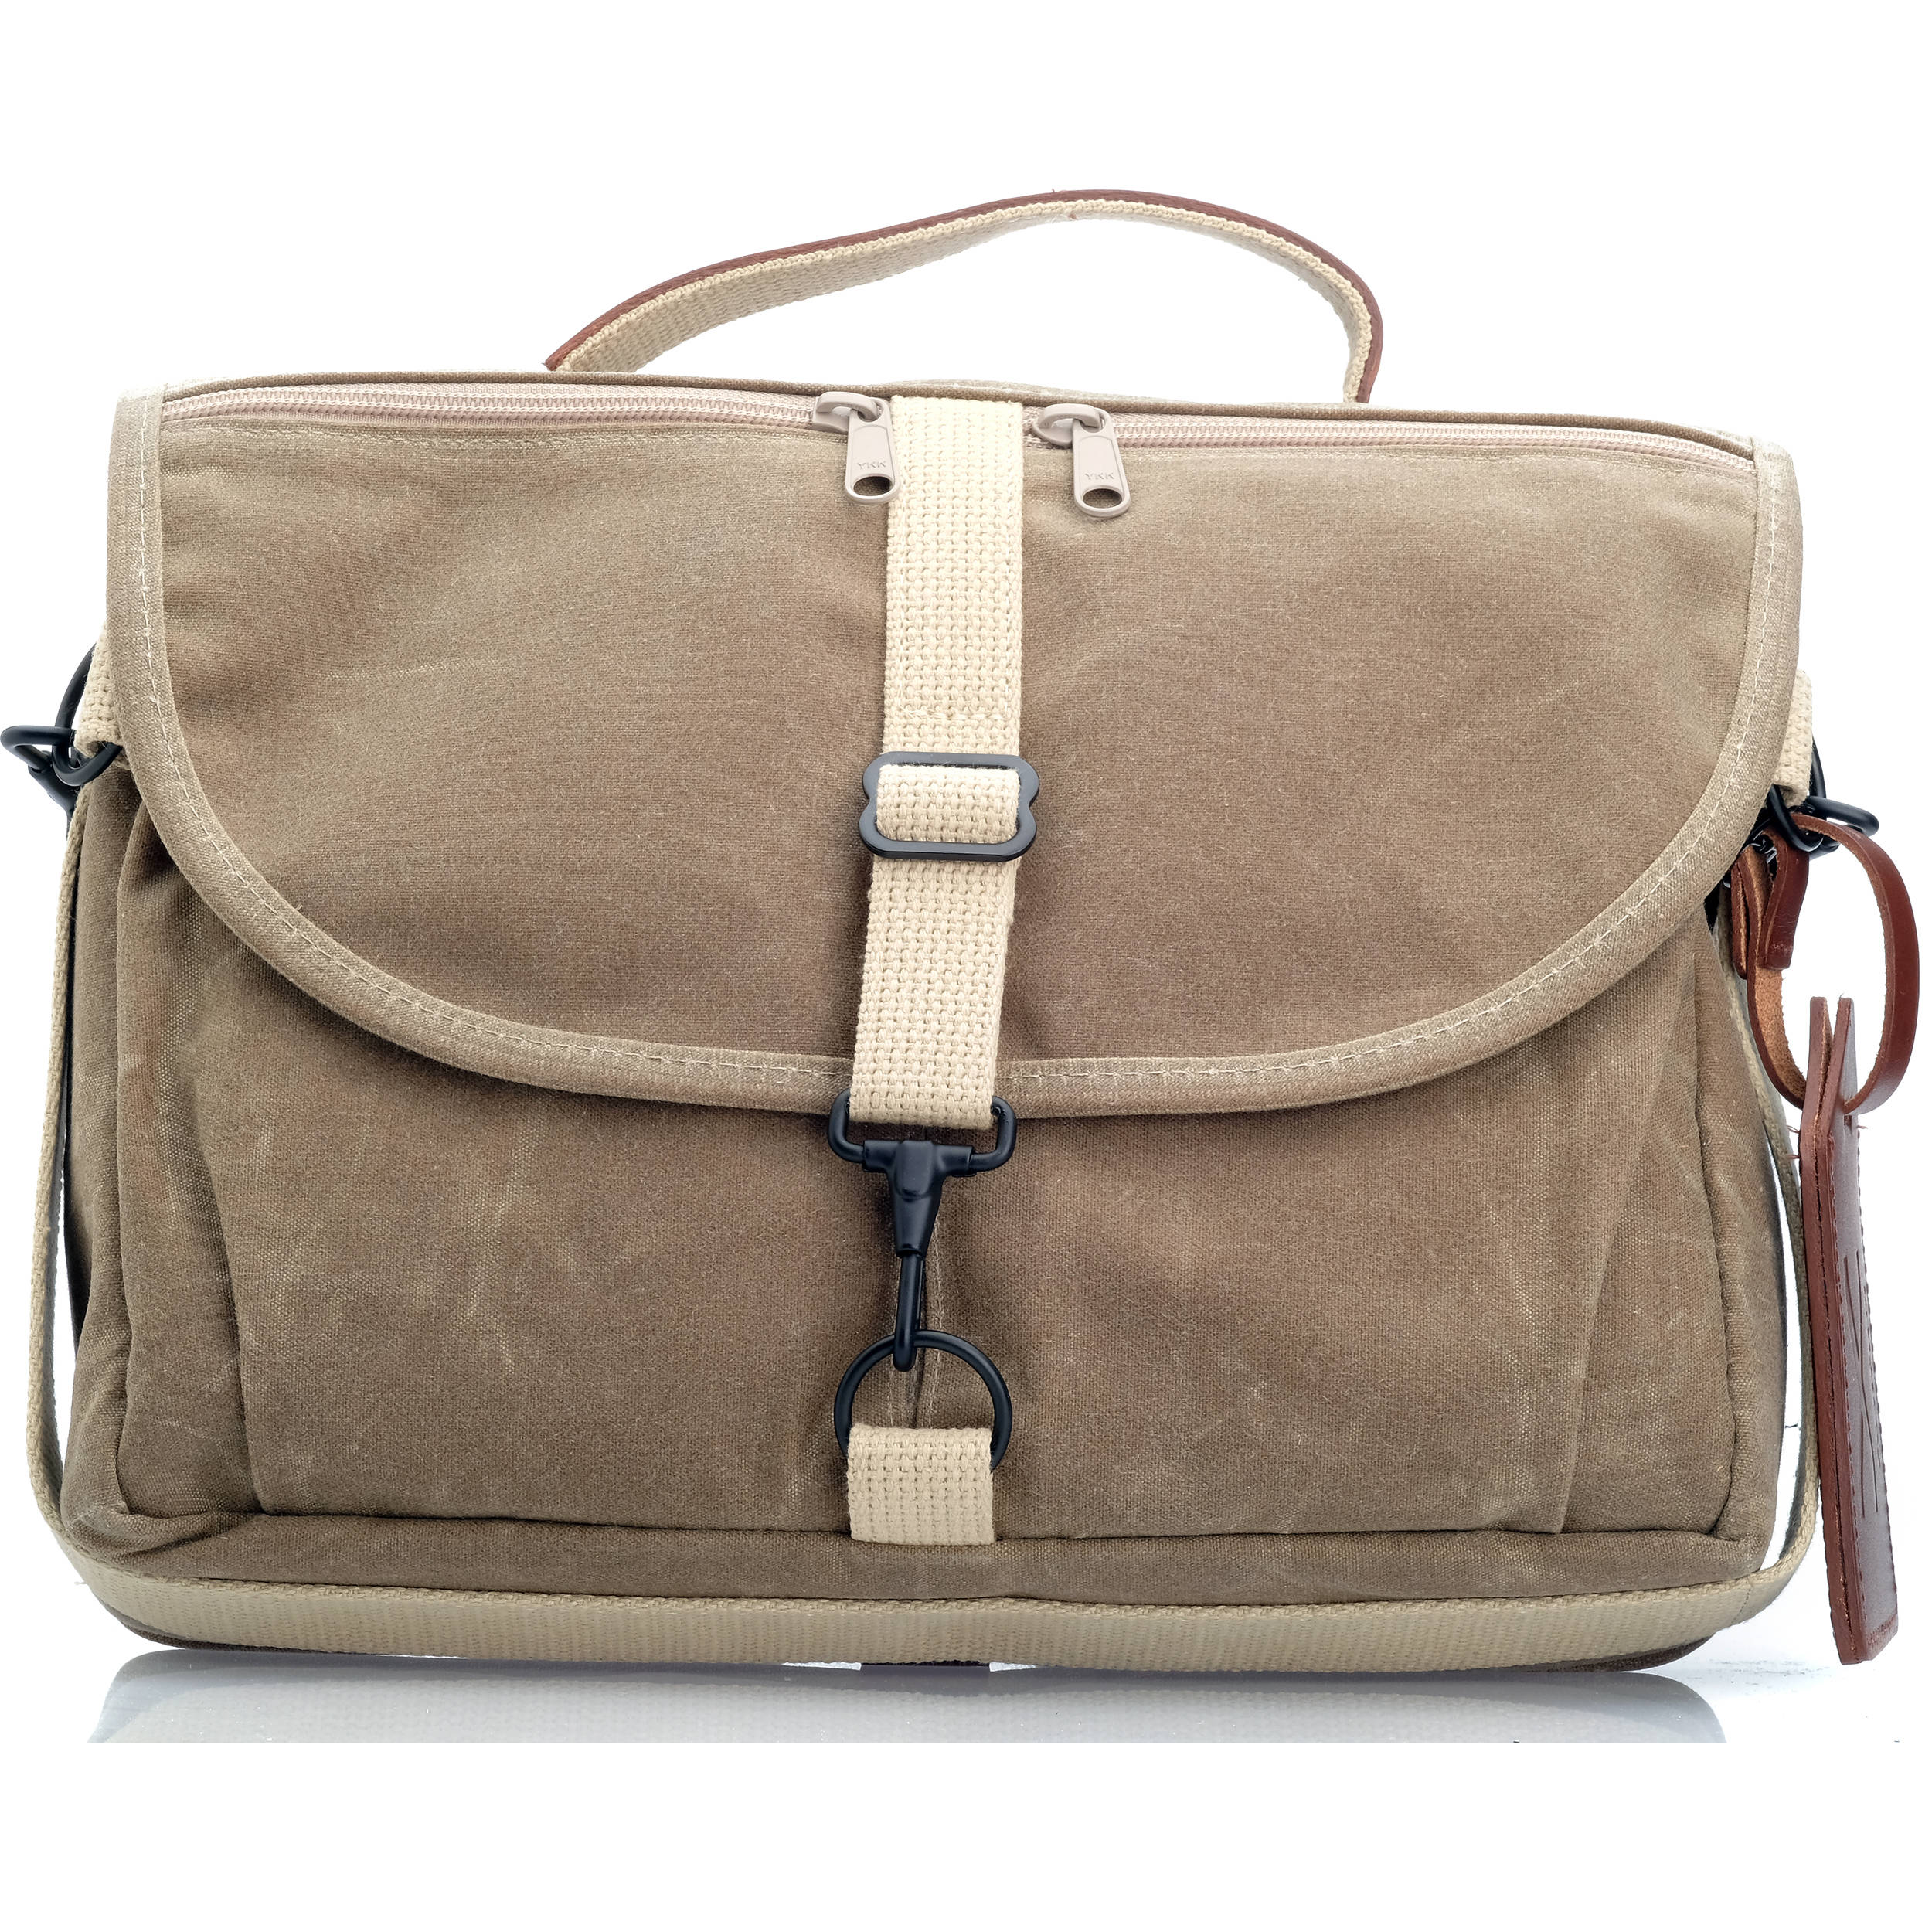 Fujifilm Domke F 803 Camera Bag Tan